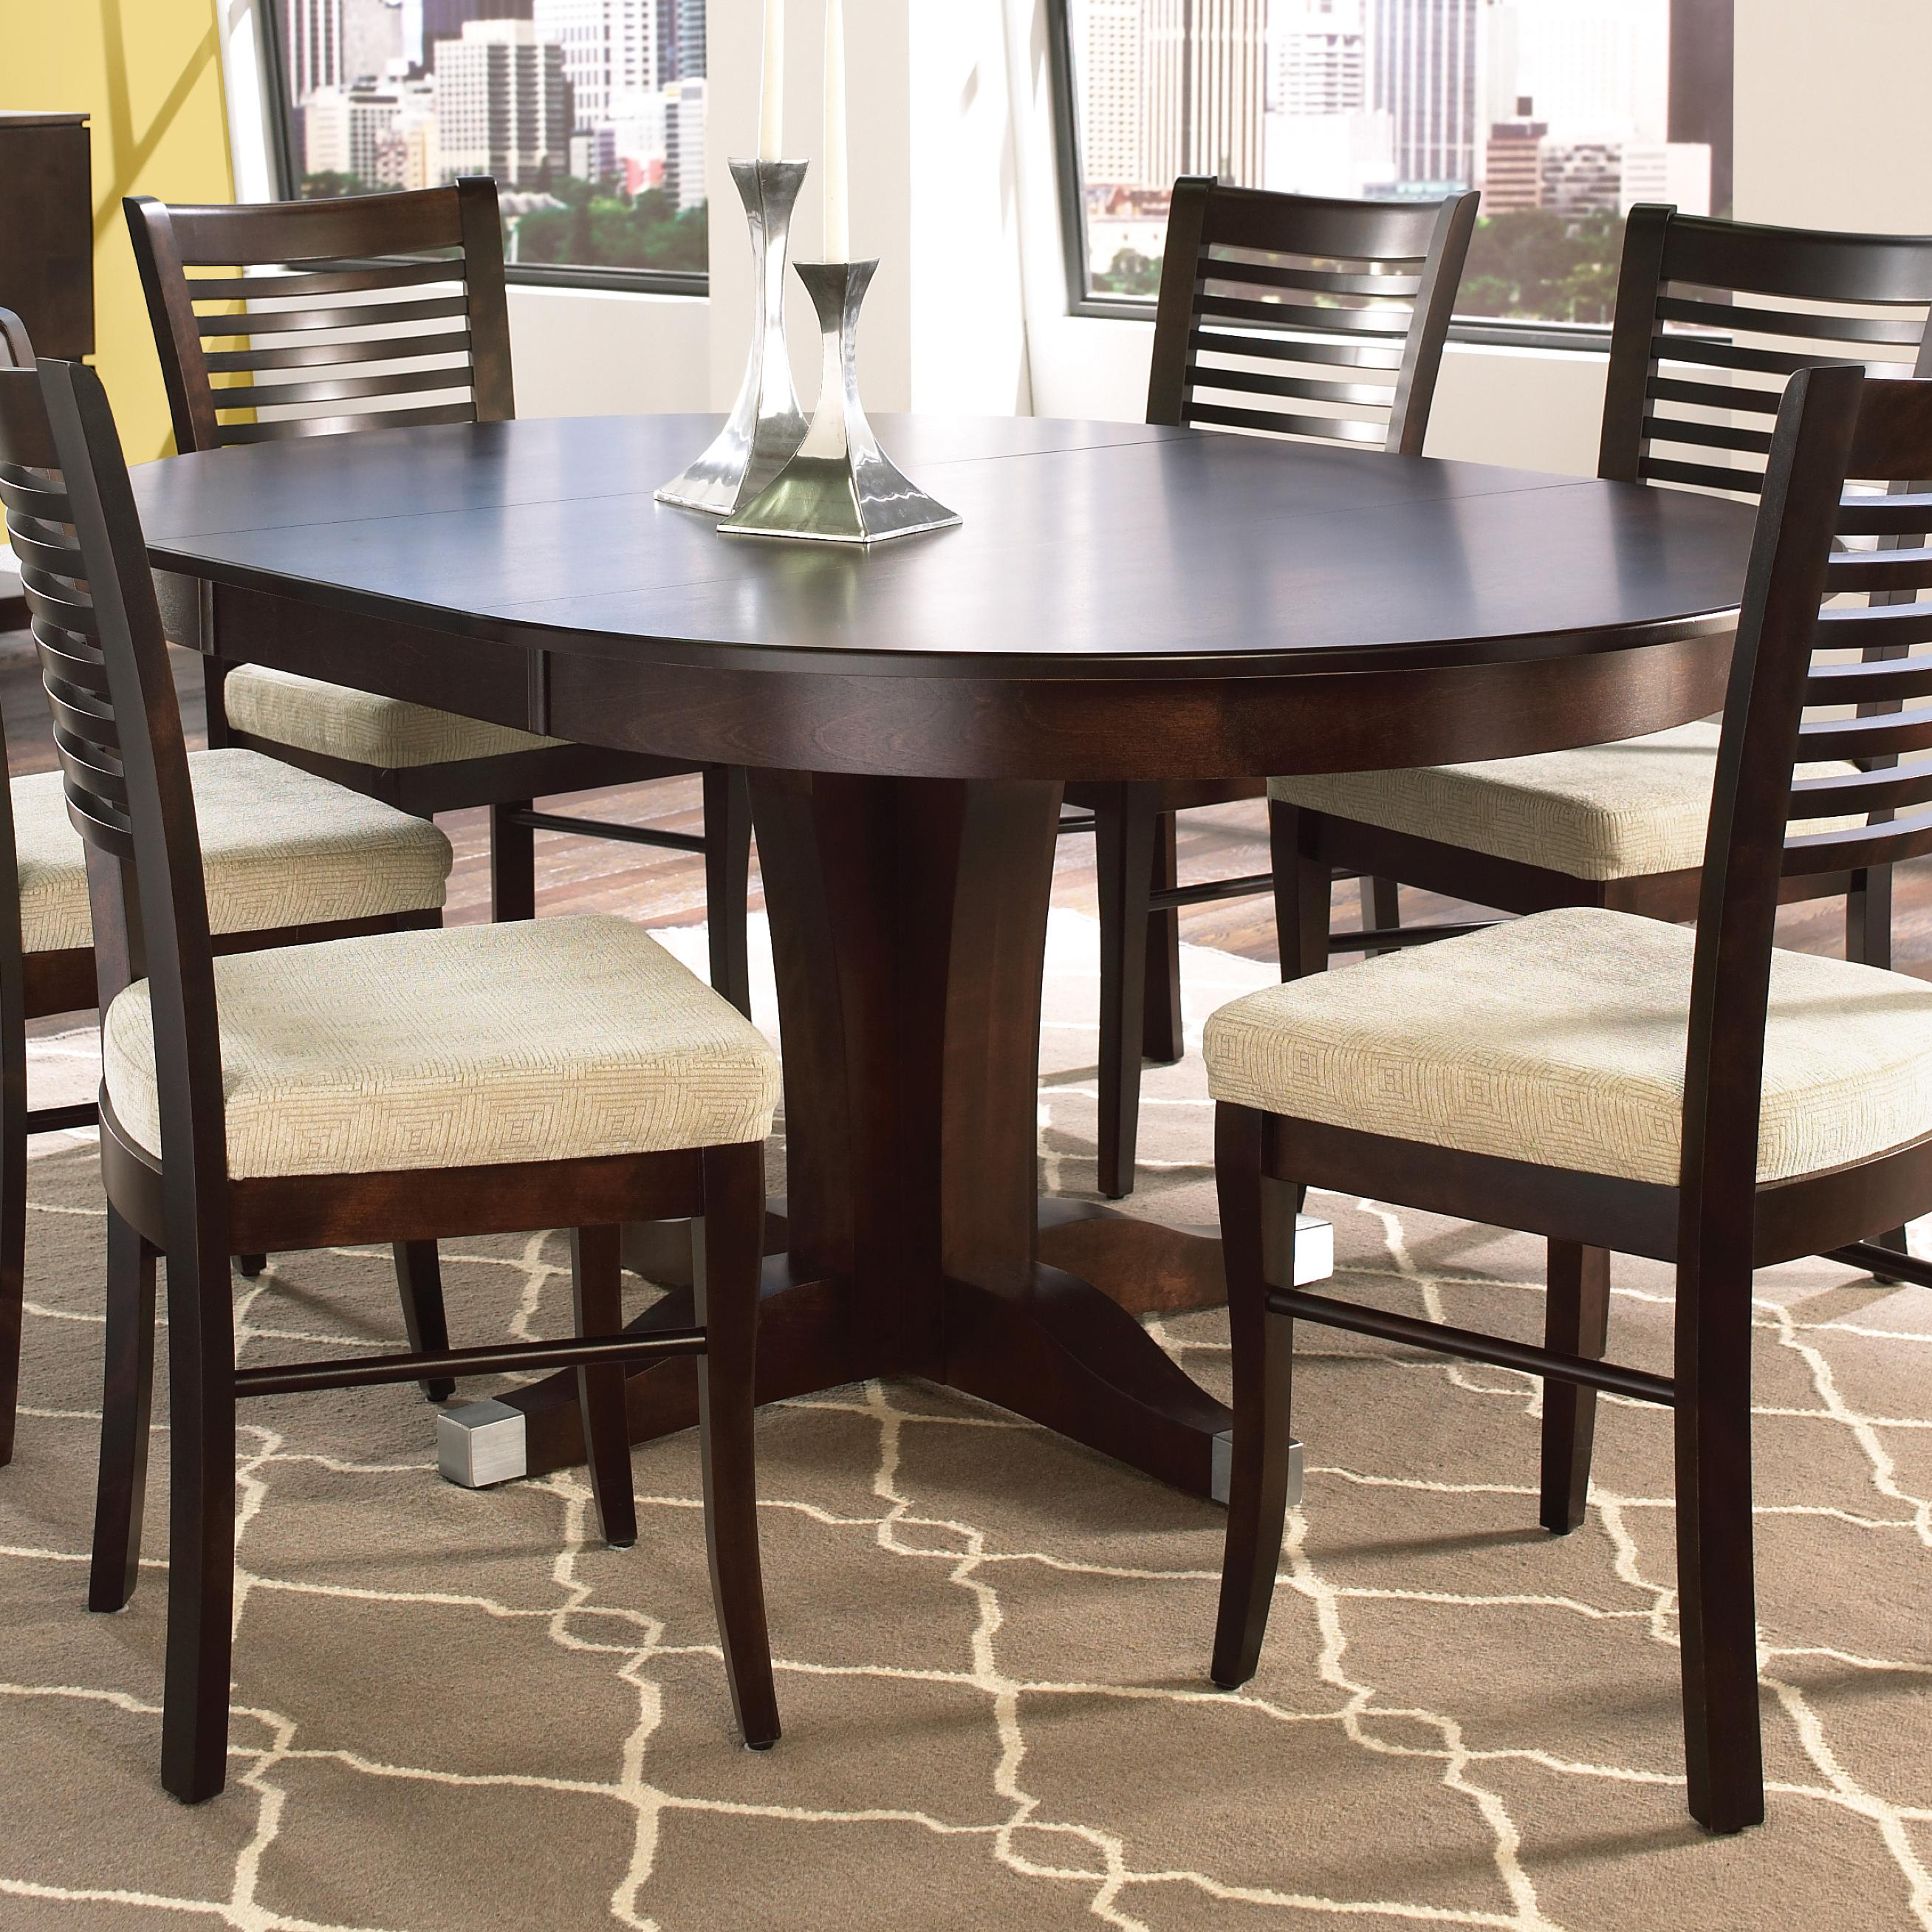 Canadel custom dining customizable round table with pedestal and leaf sheely 39 s furniture - Custom kitchen table ...